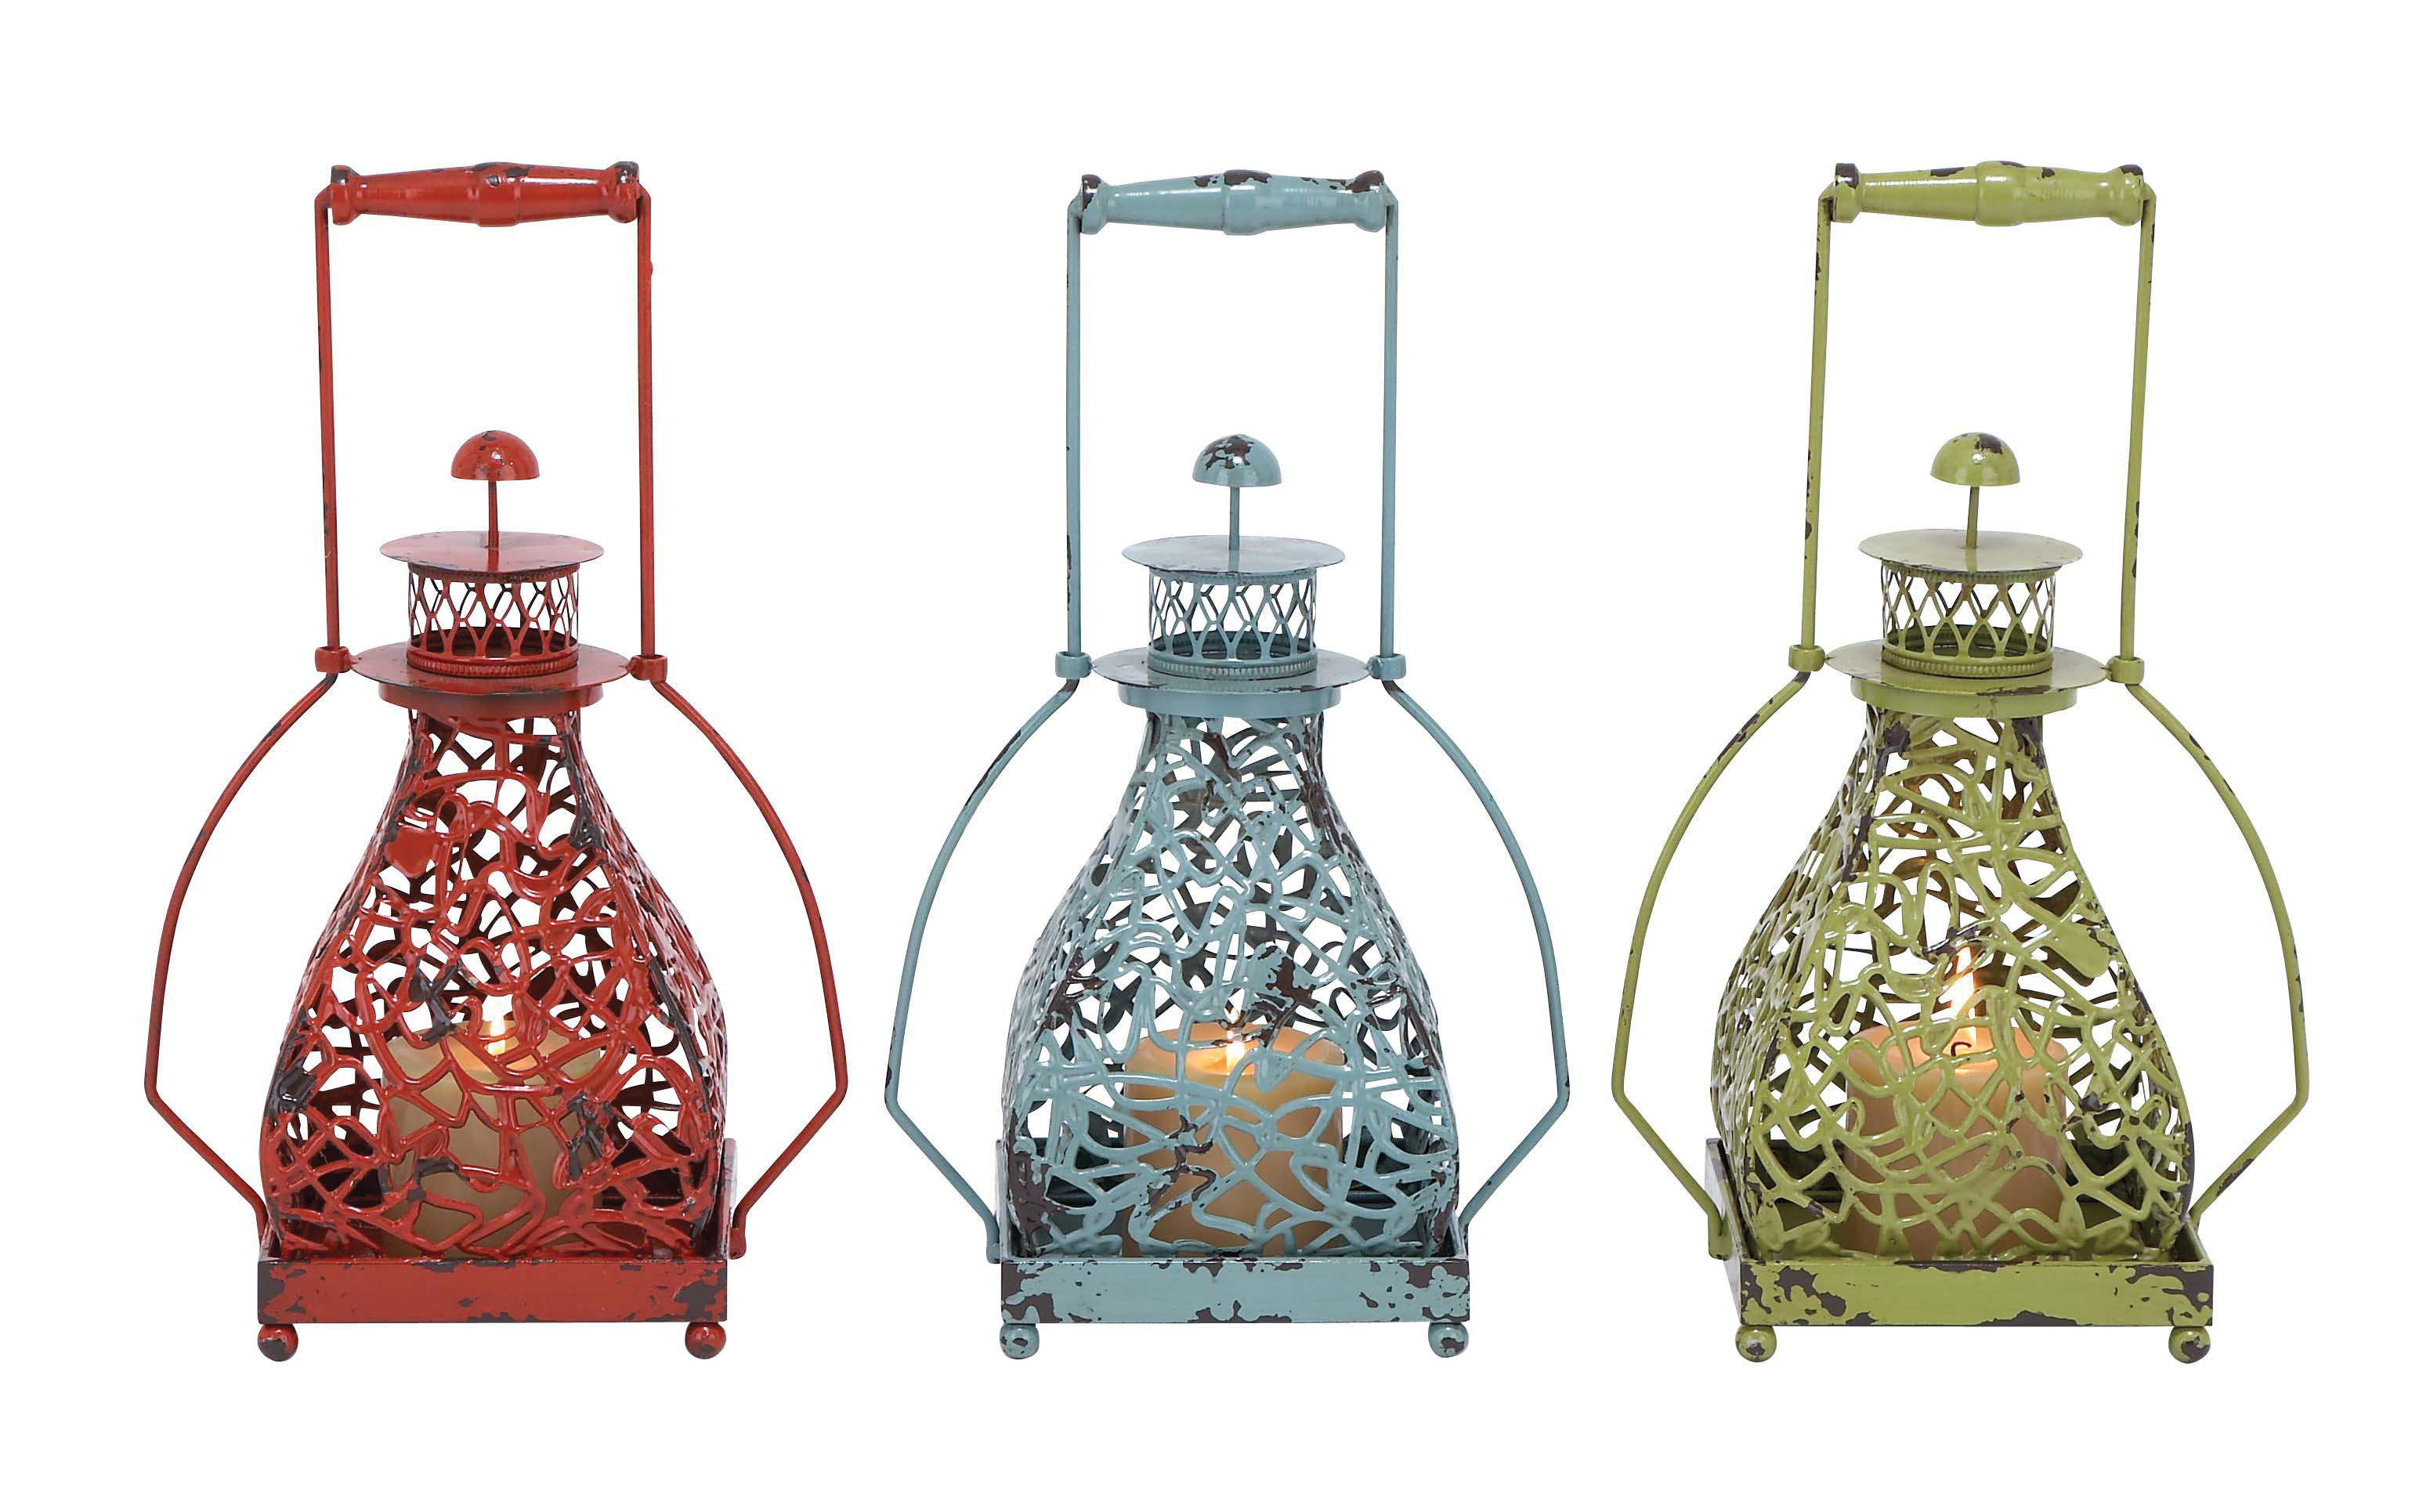 Metal Candle Holder 3 Assorted With Vibrant Colors 5899529ec98fc433fb584edf